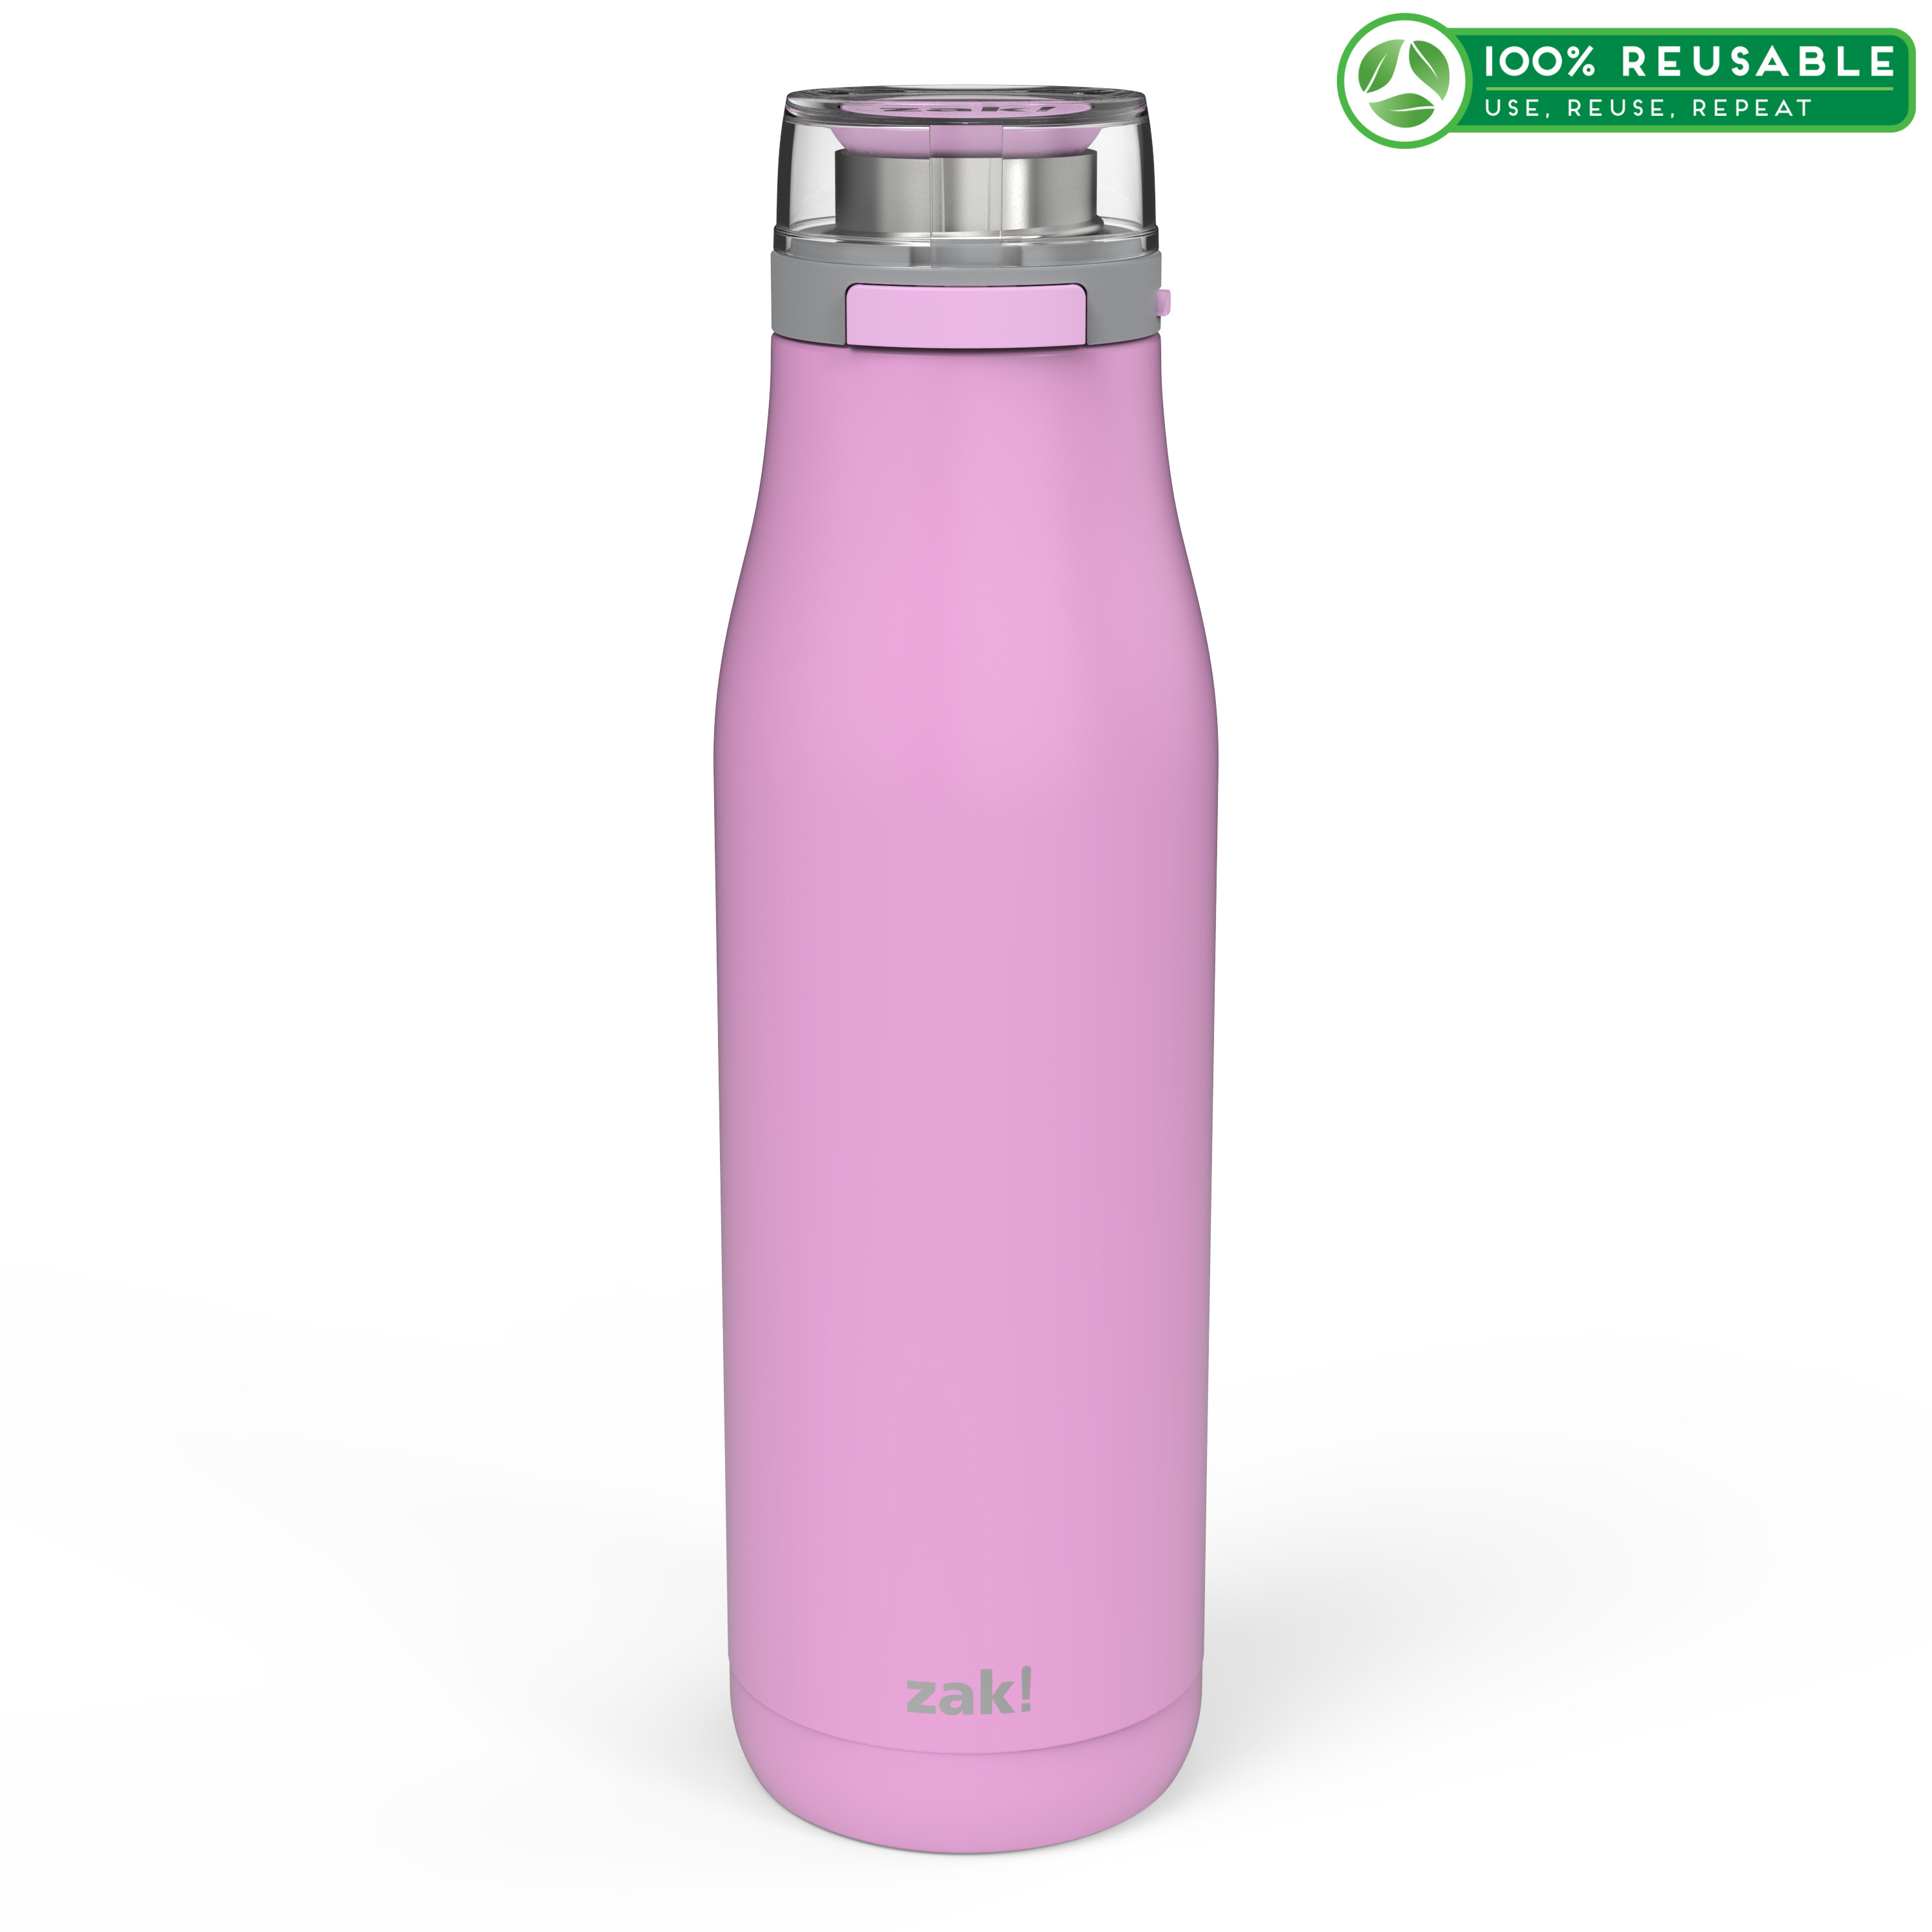 Kiona 29 ounce Vacuum Insulated Stainless Steel Tumbler, Lilac slideshow image 1